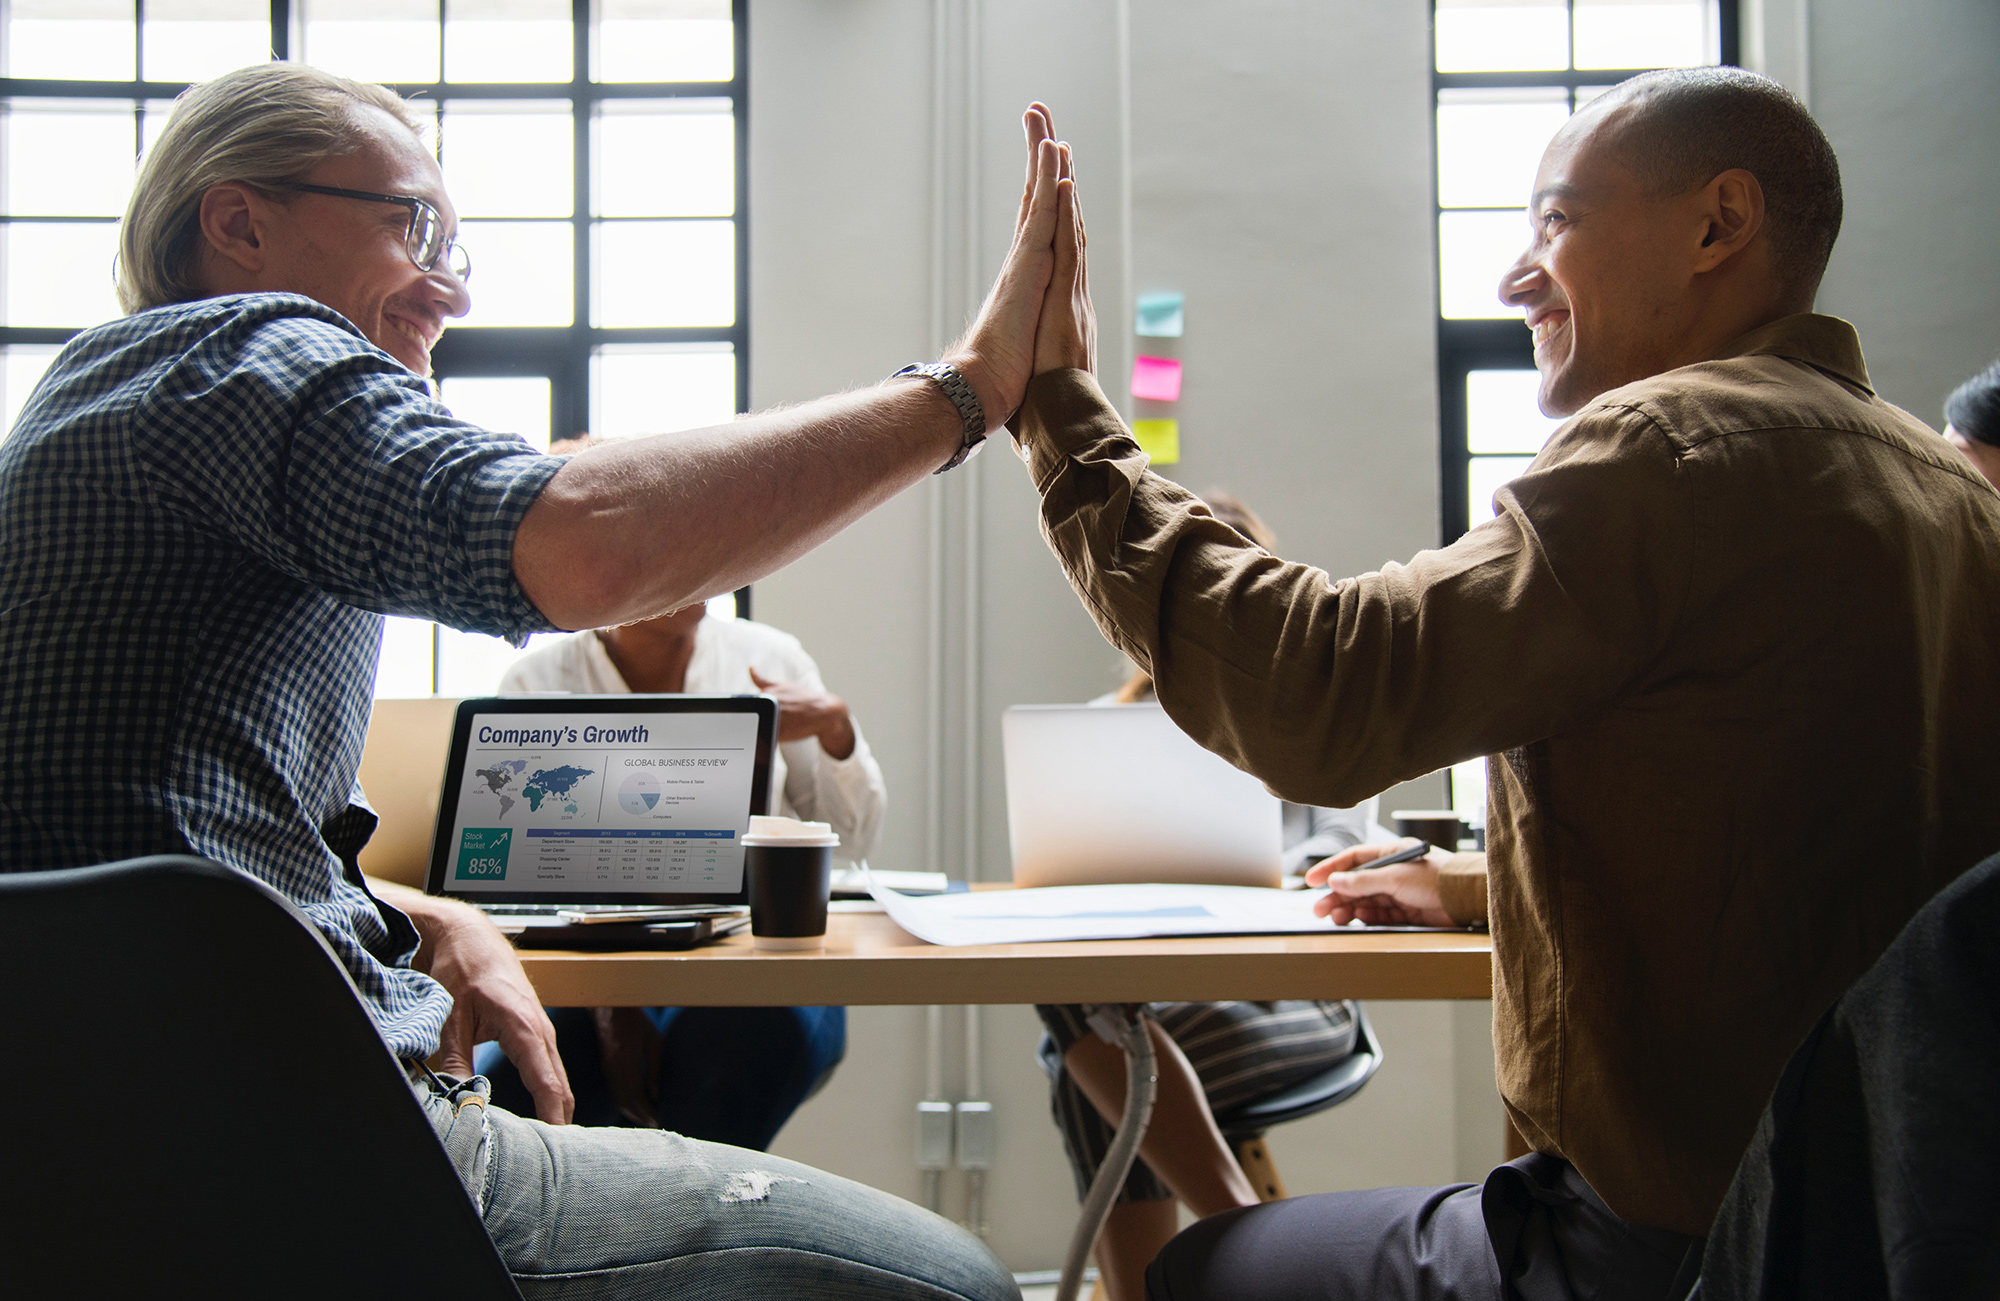 Two people high-fiving at office meeting